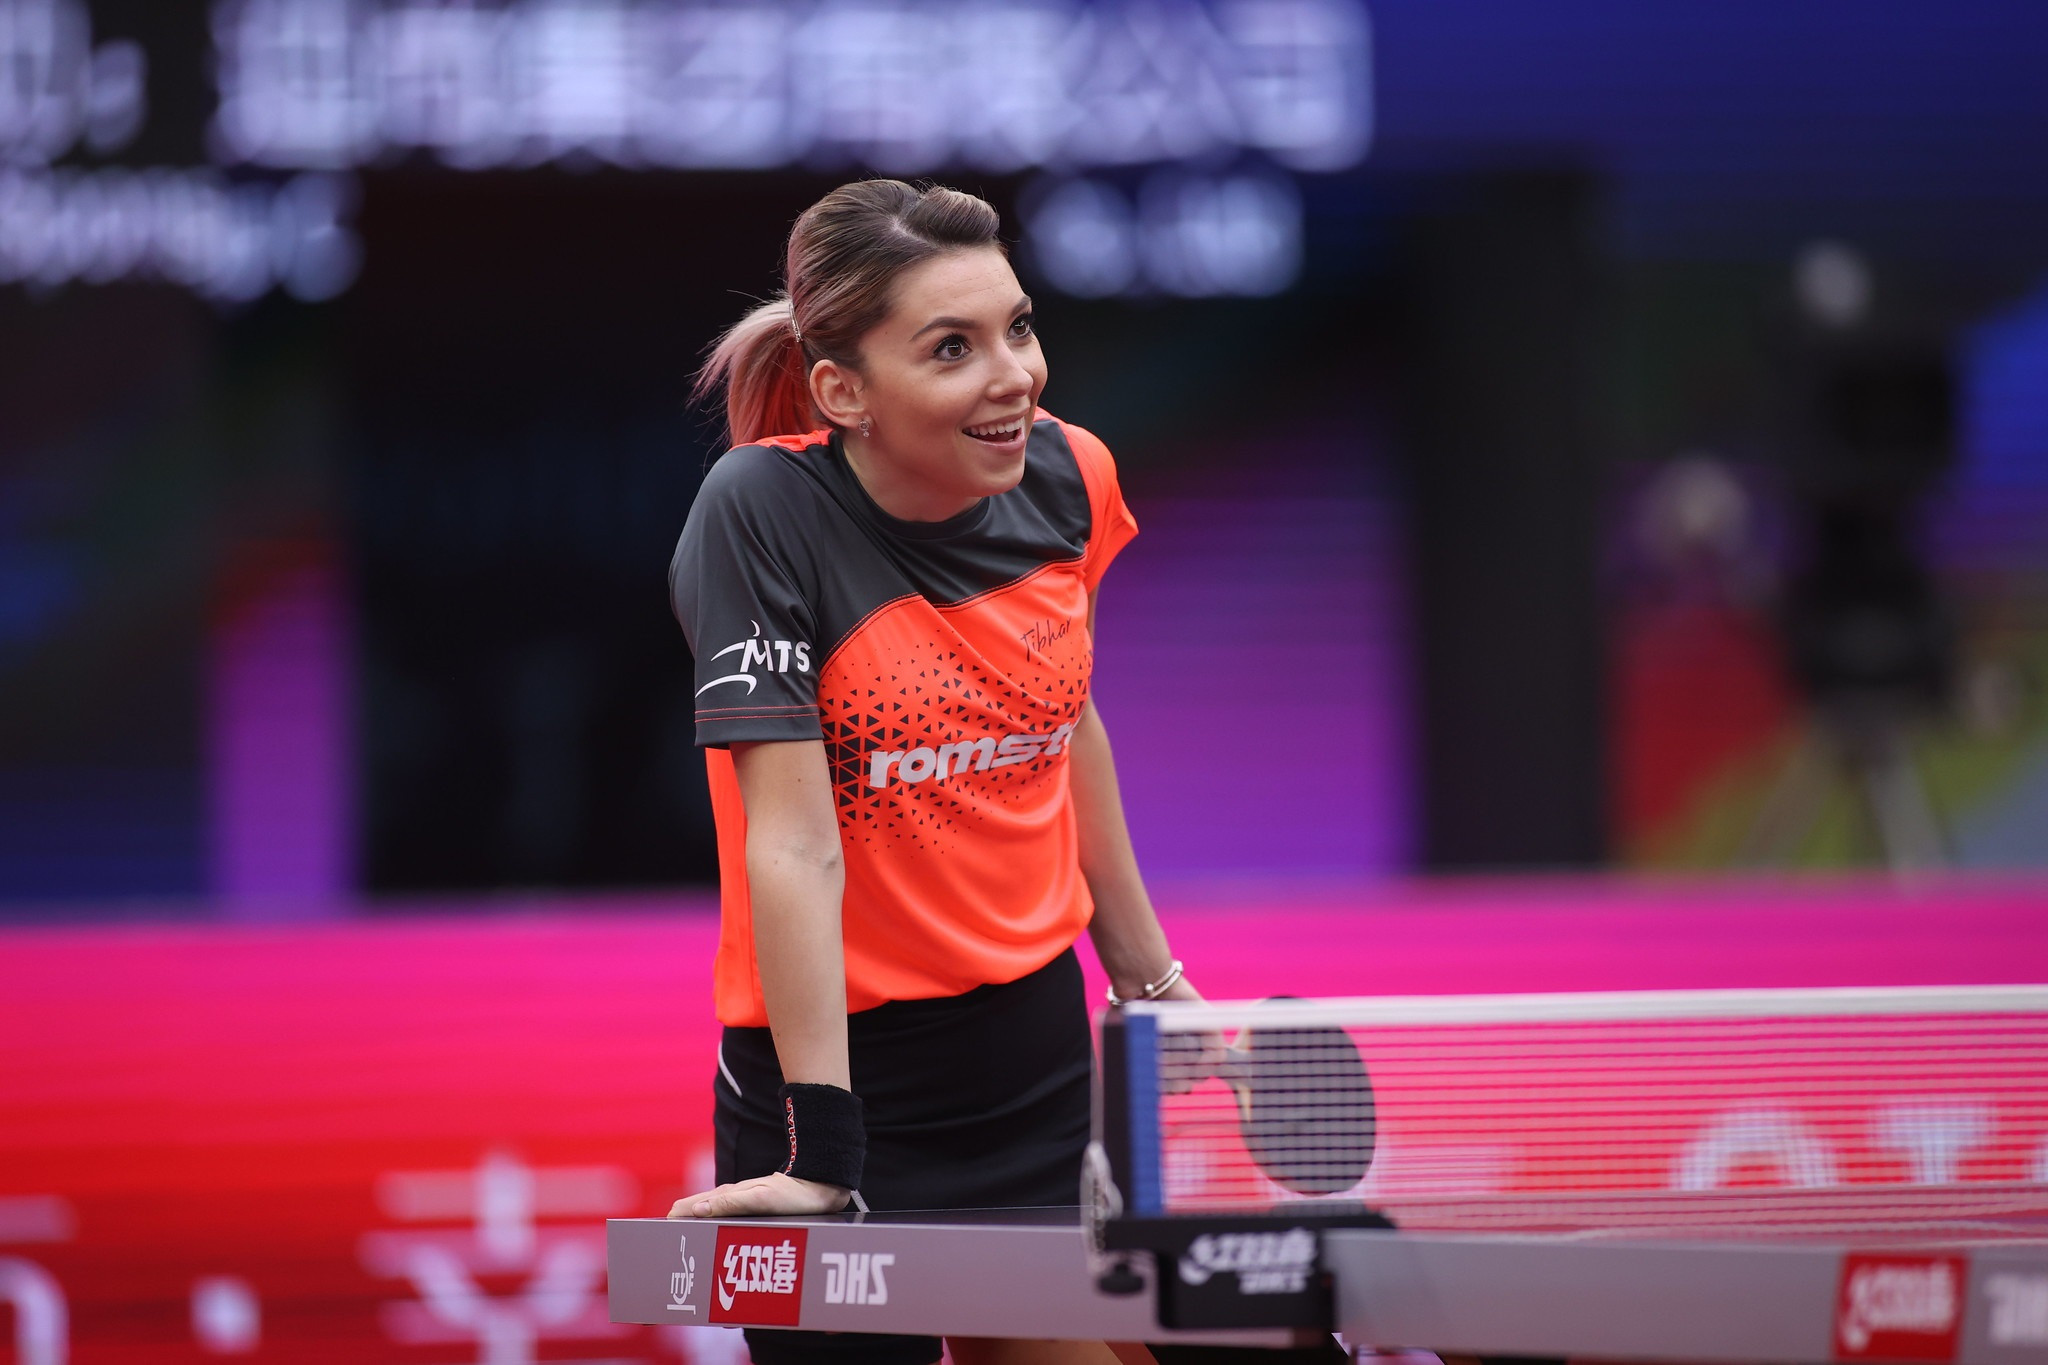 Szocs wins thriller to set up meeting with world number one Chen in Women's World Cup